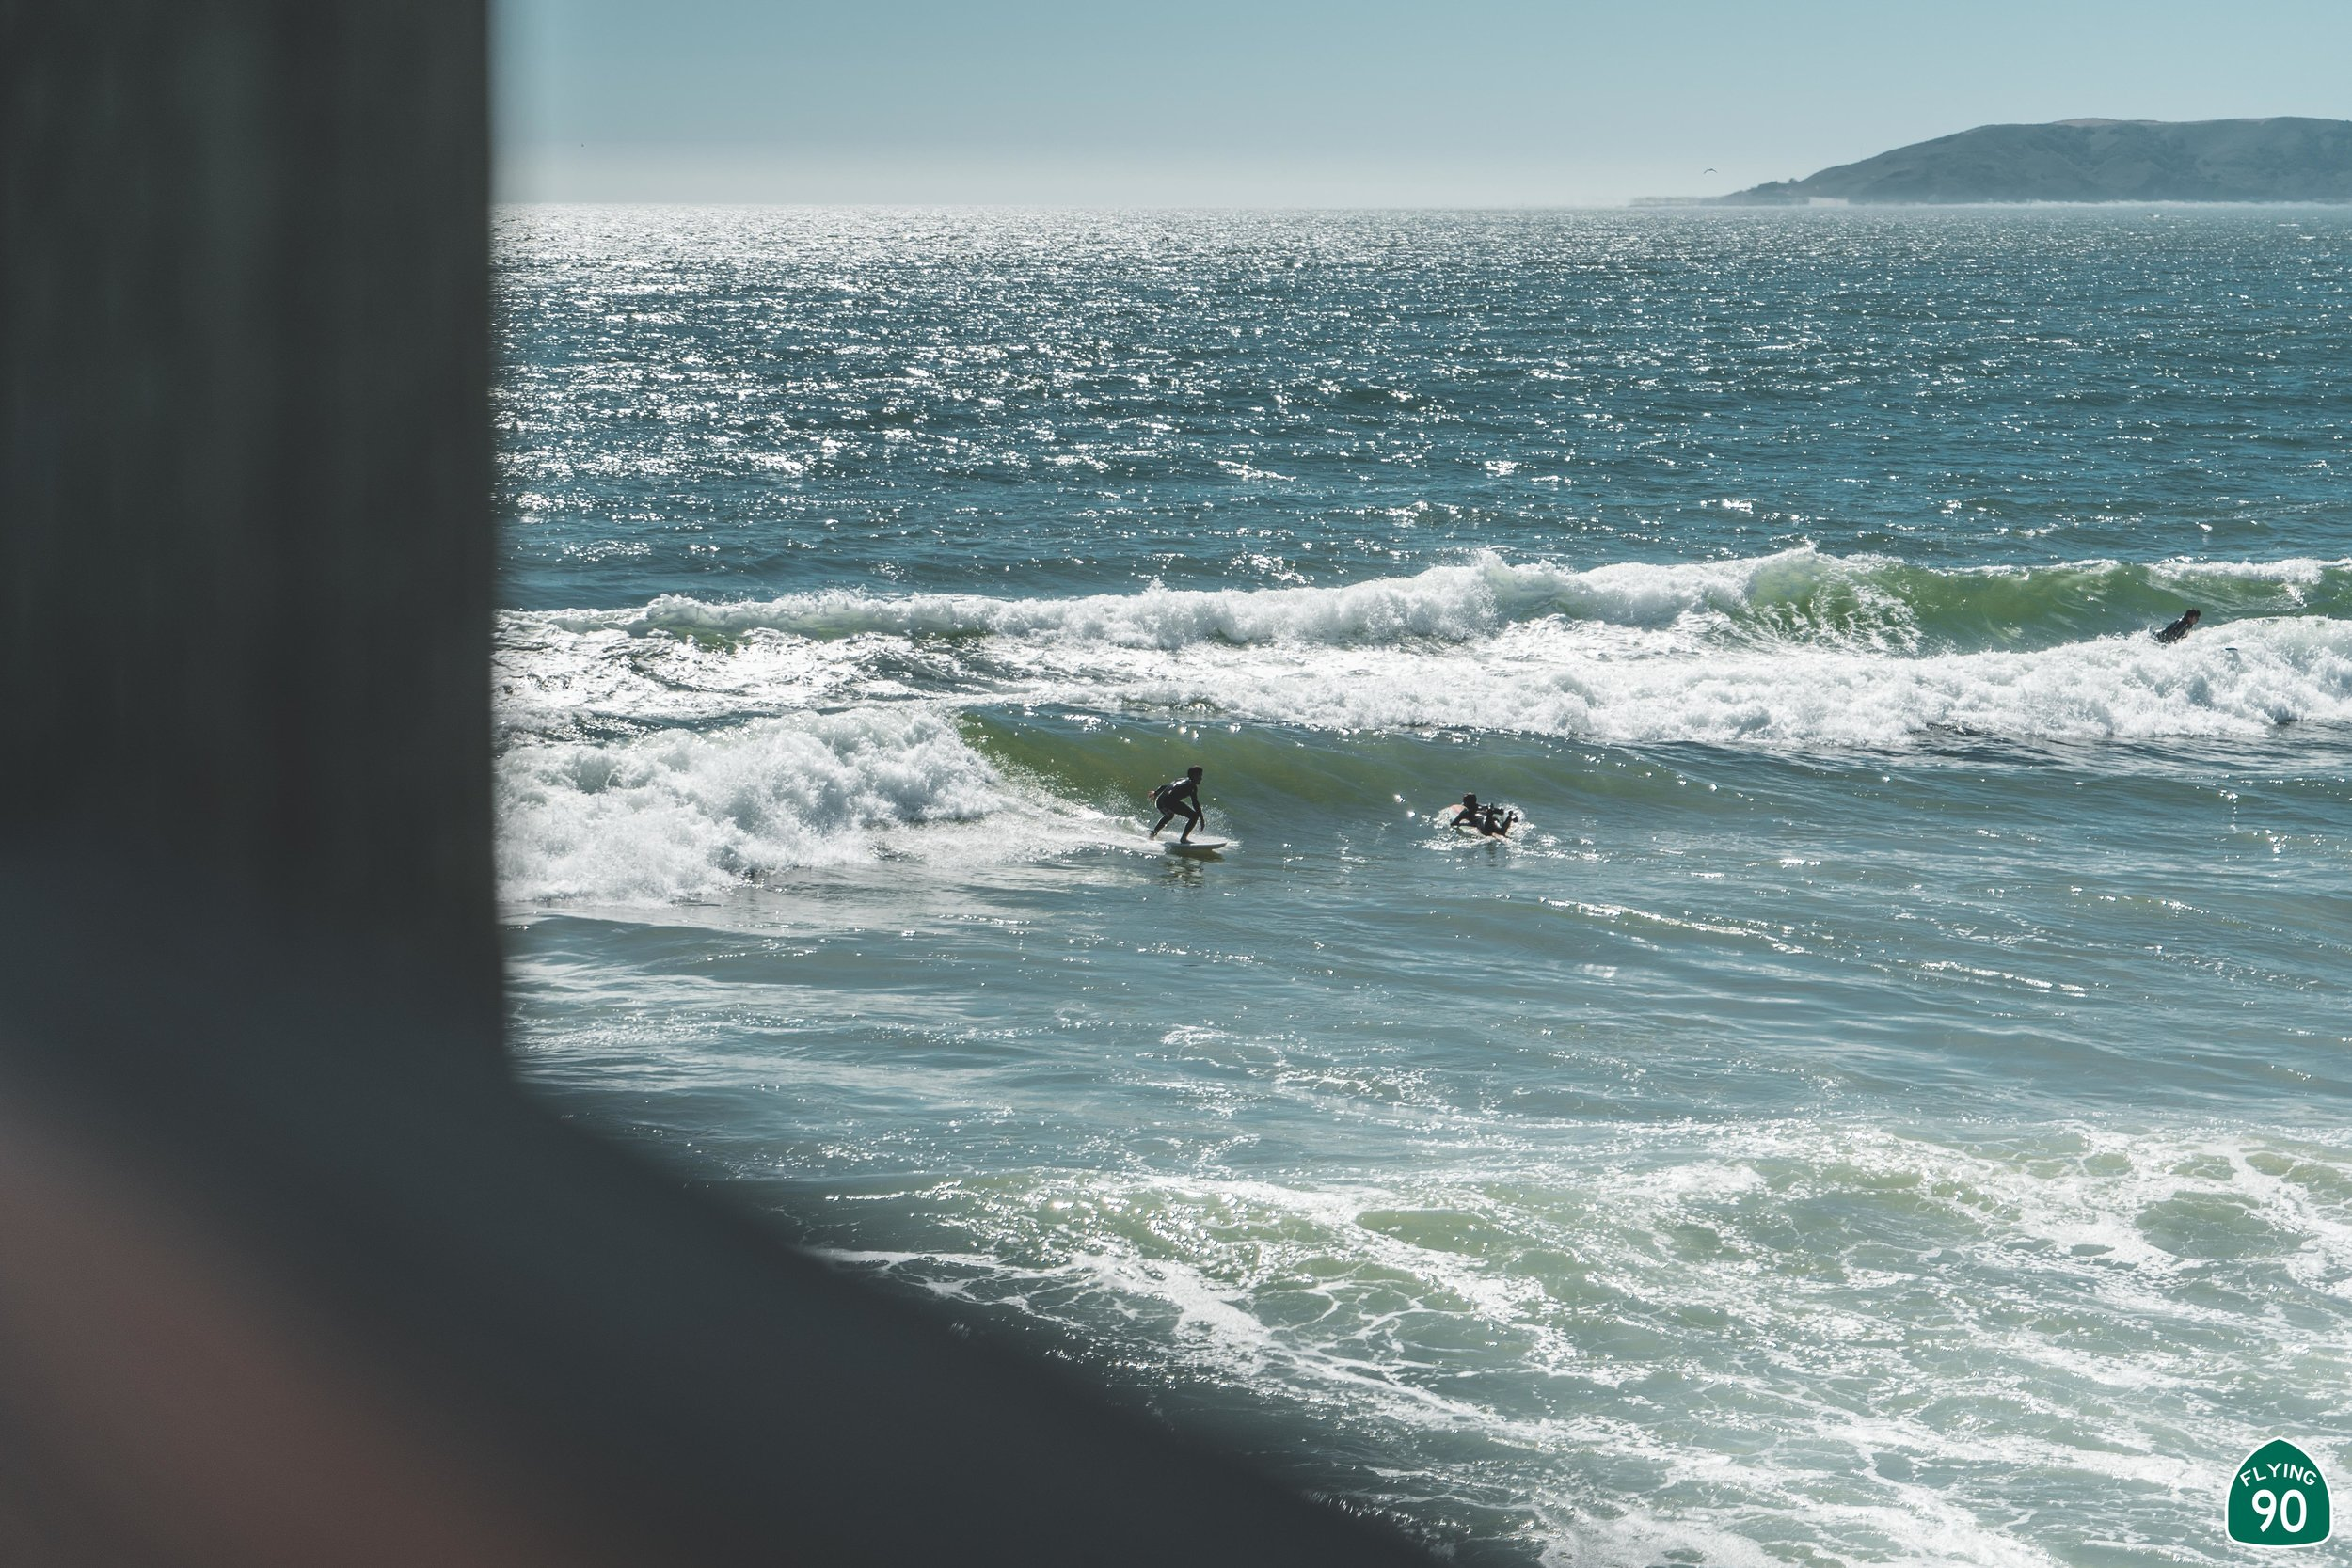 After Oso Flaco, we headed to the Pismo Pier to walk around and take some photos of people getting SUPER pitted.